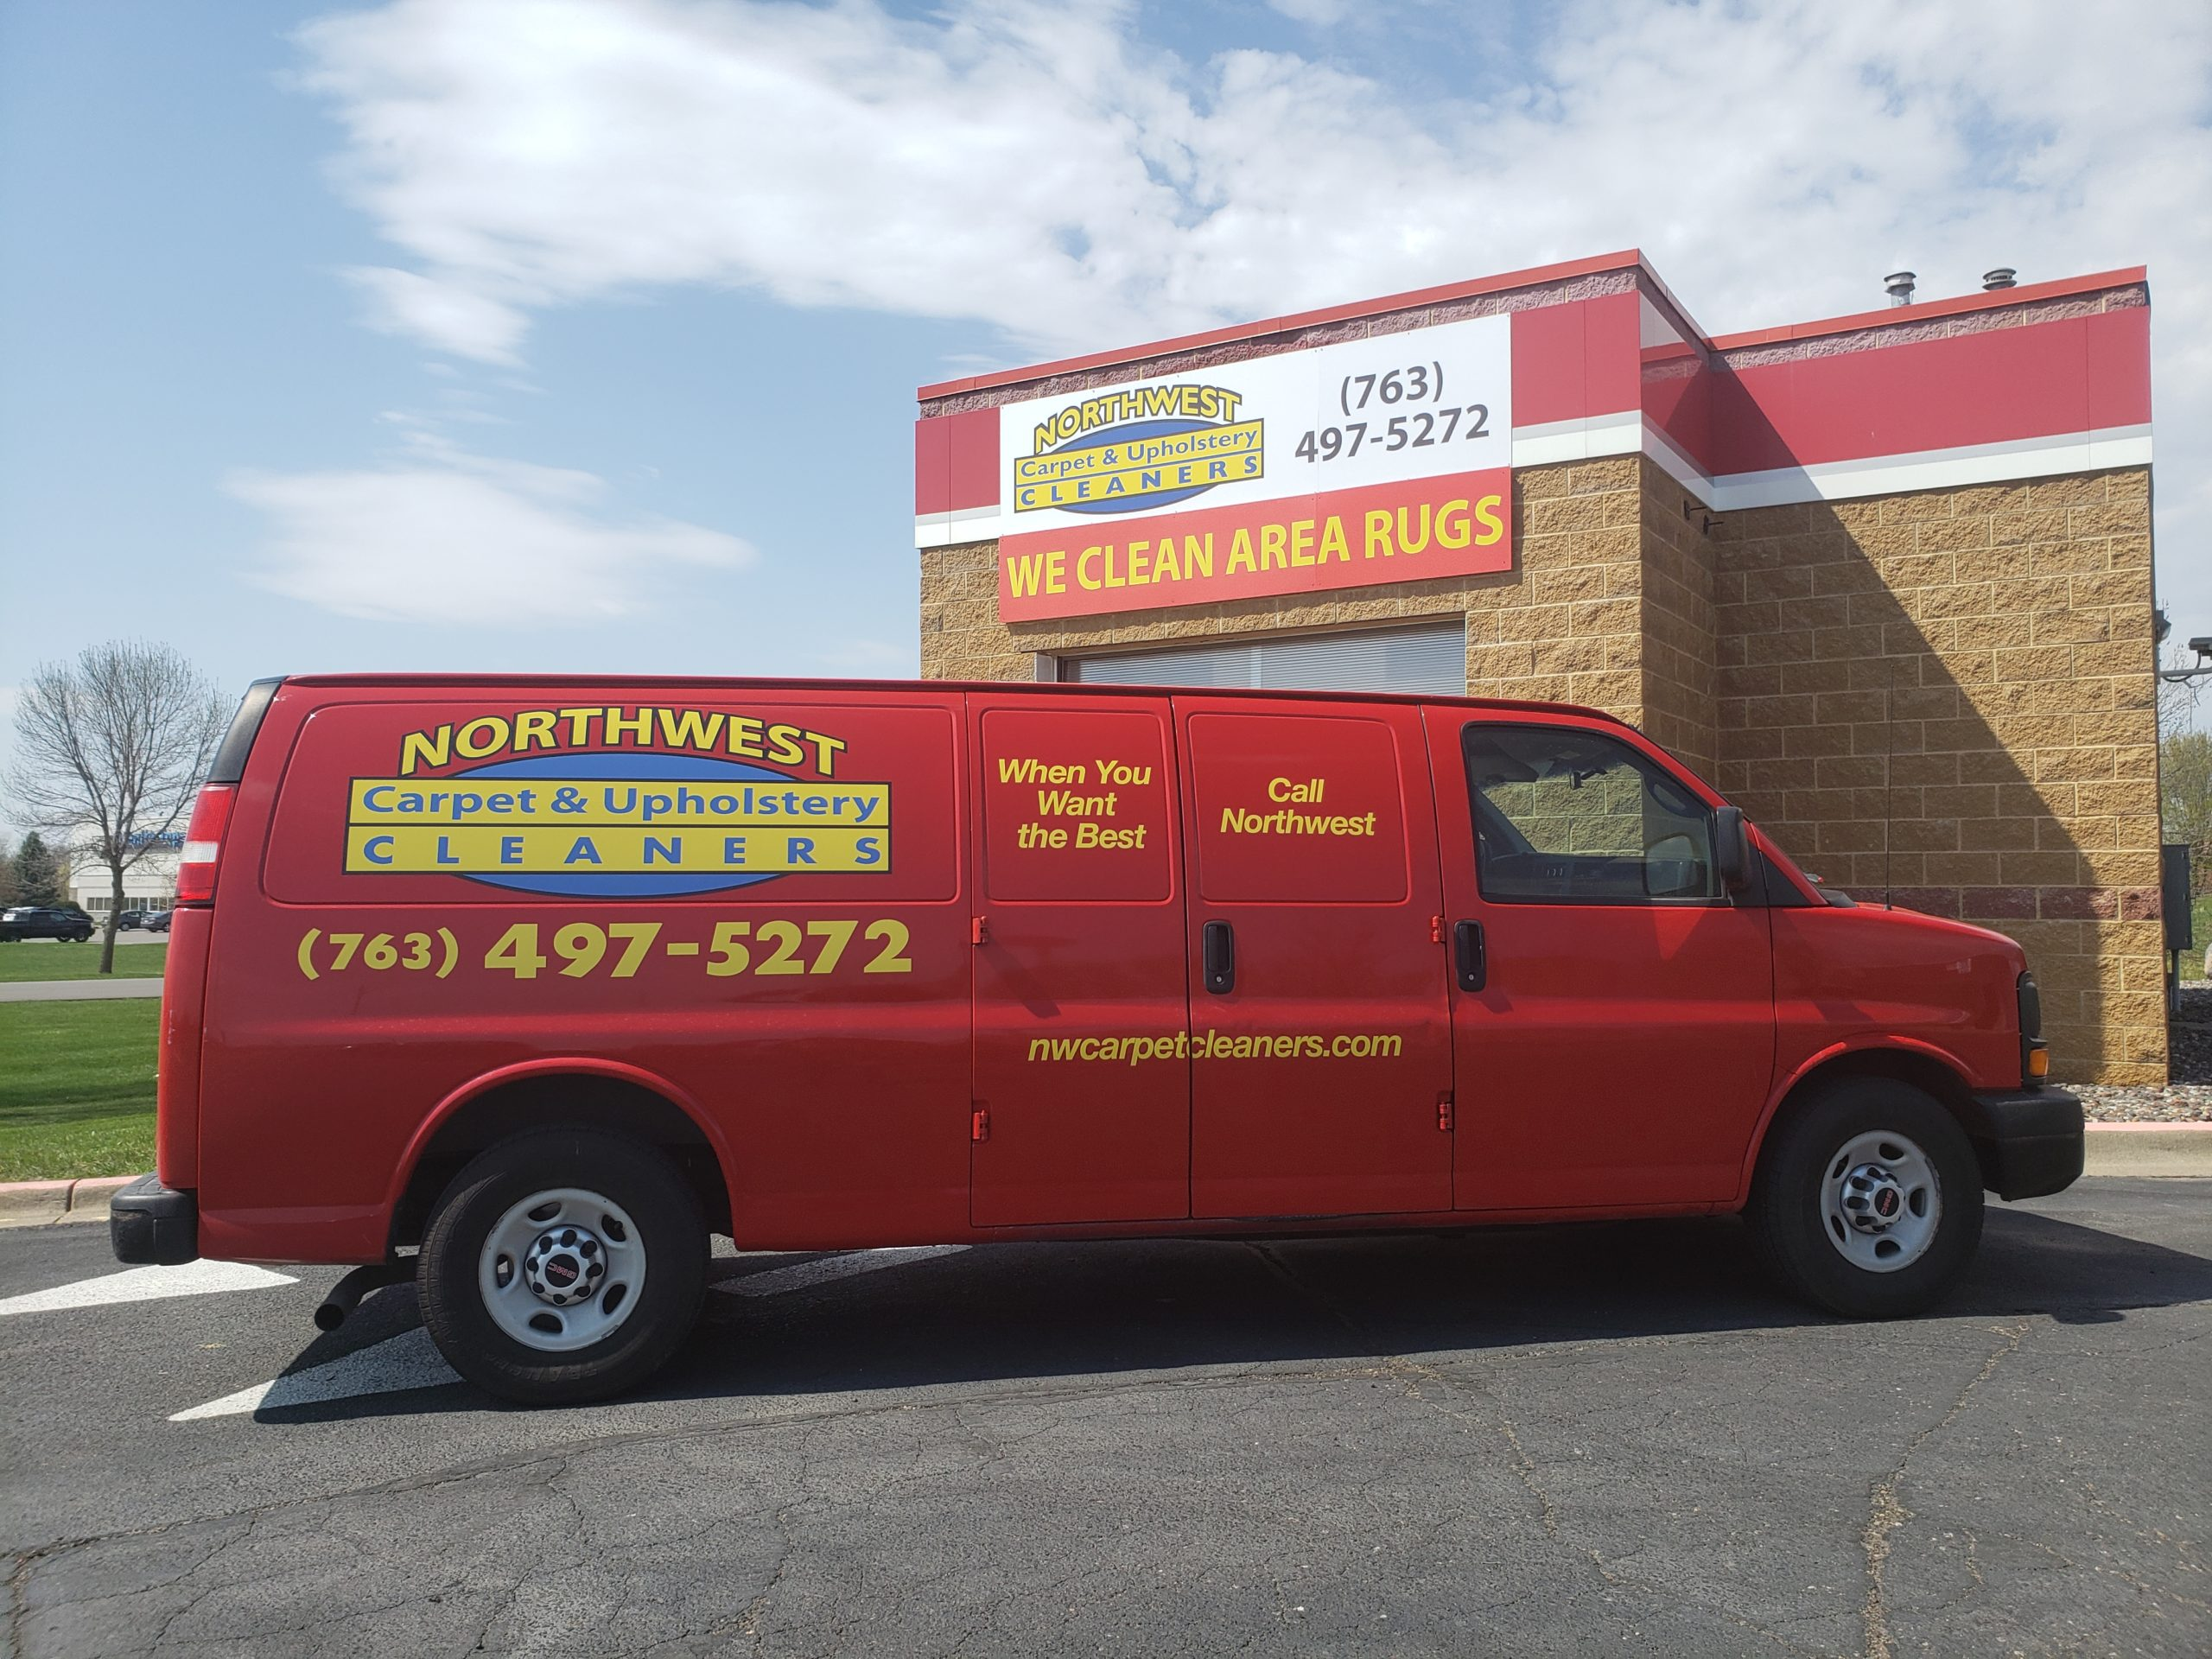 Northwest Carpet Cleaning Truck - Minneapolis Minnesota